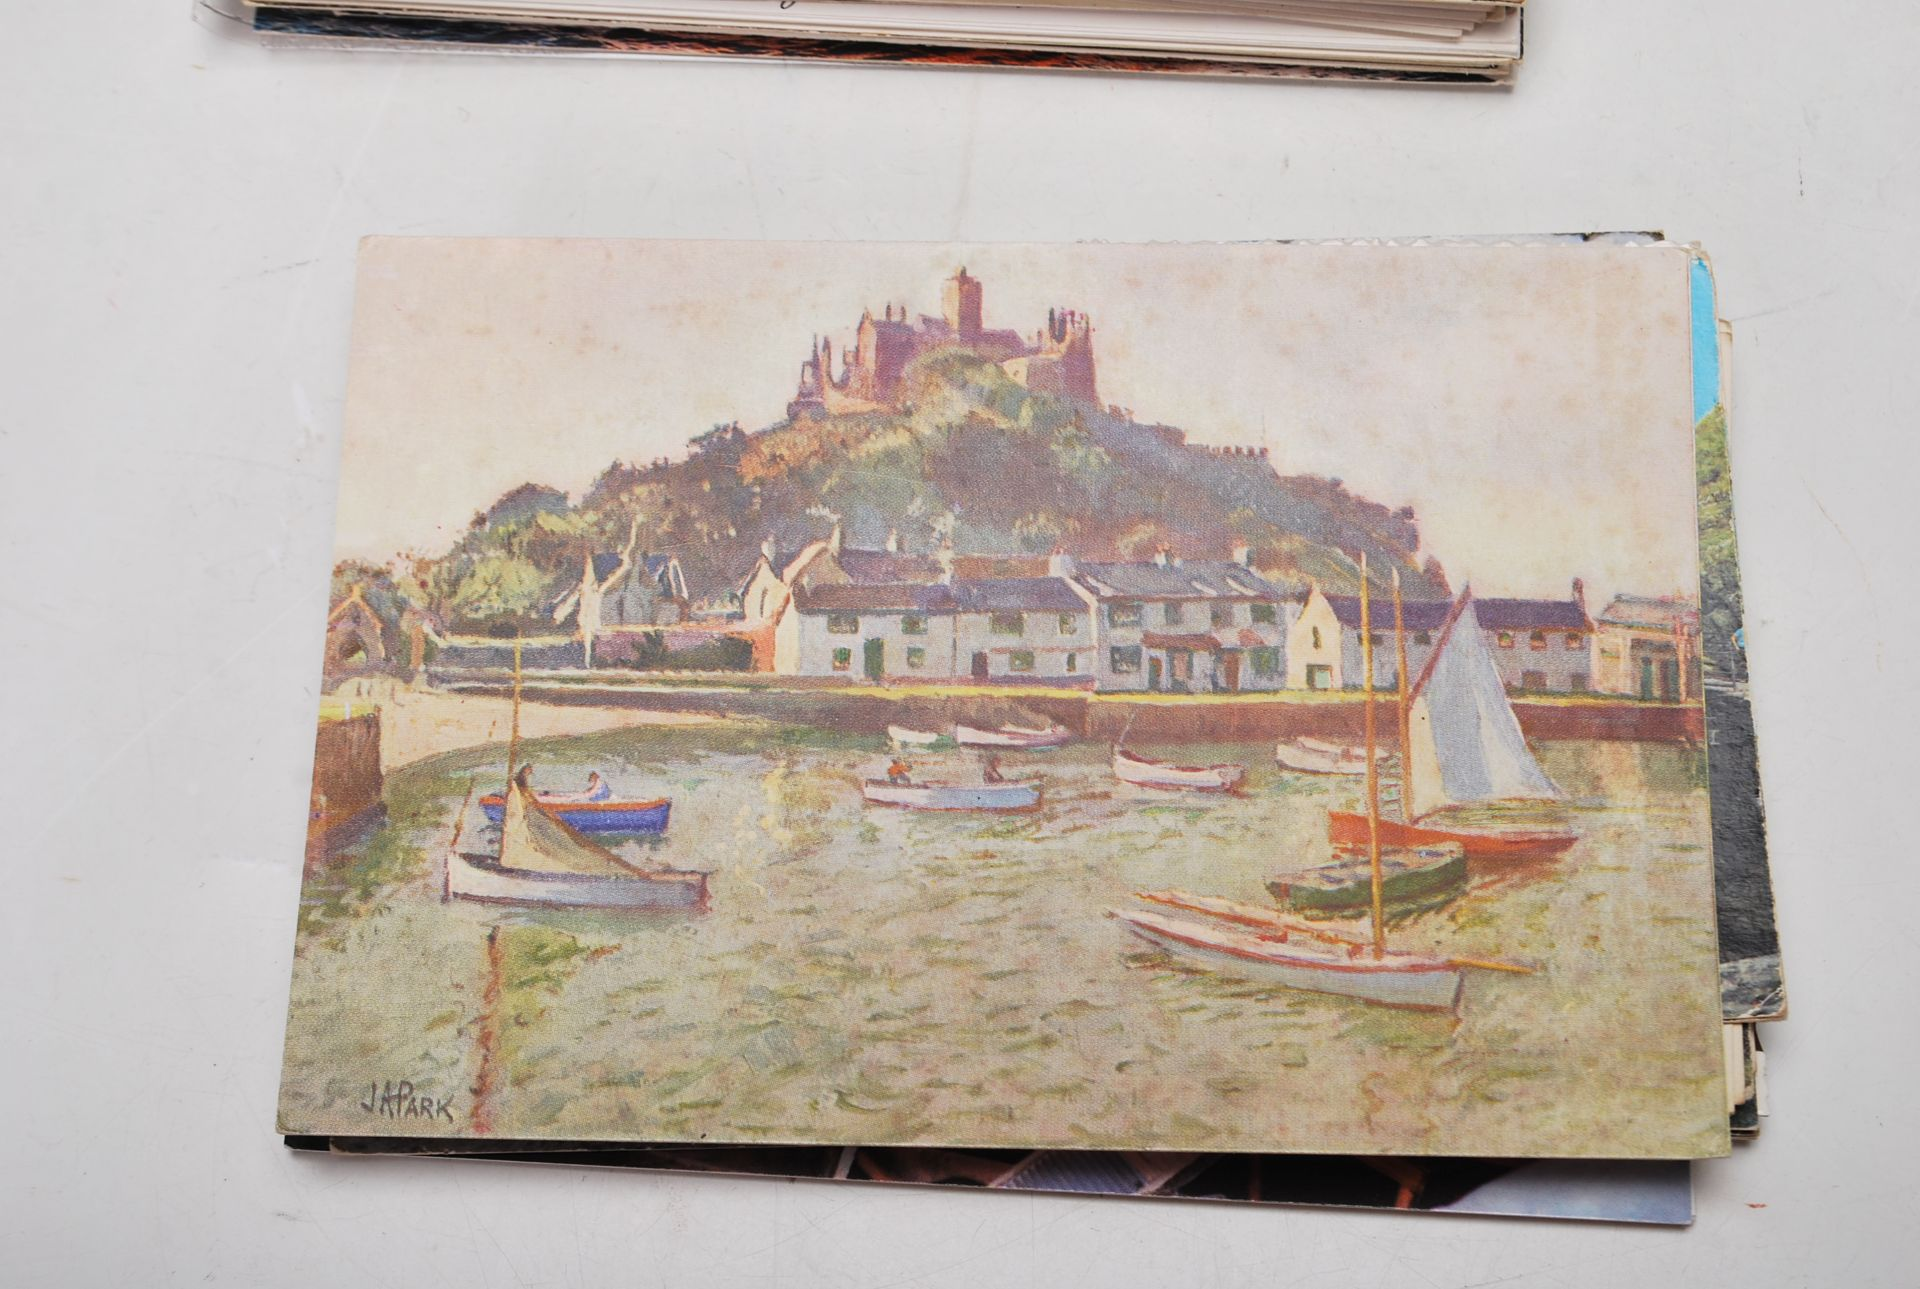 COLLECTION OF VINTAGE POSTCARDS - CORNWALL BRISTOL - Image 4 of 6